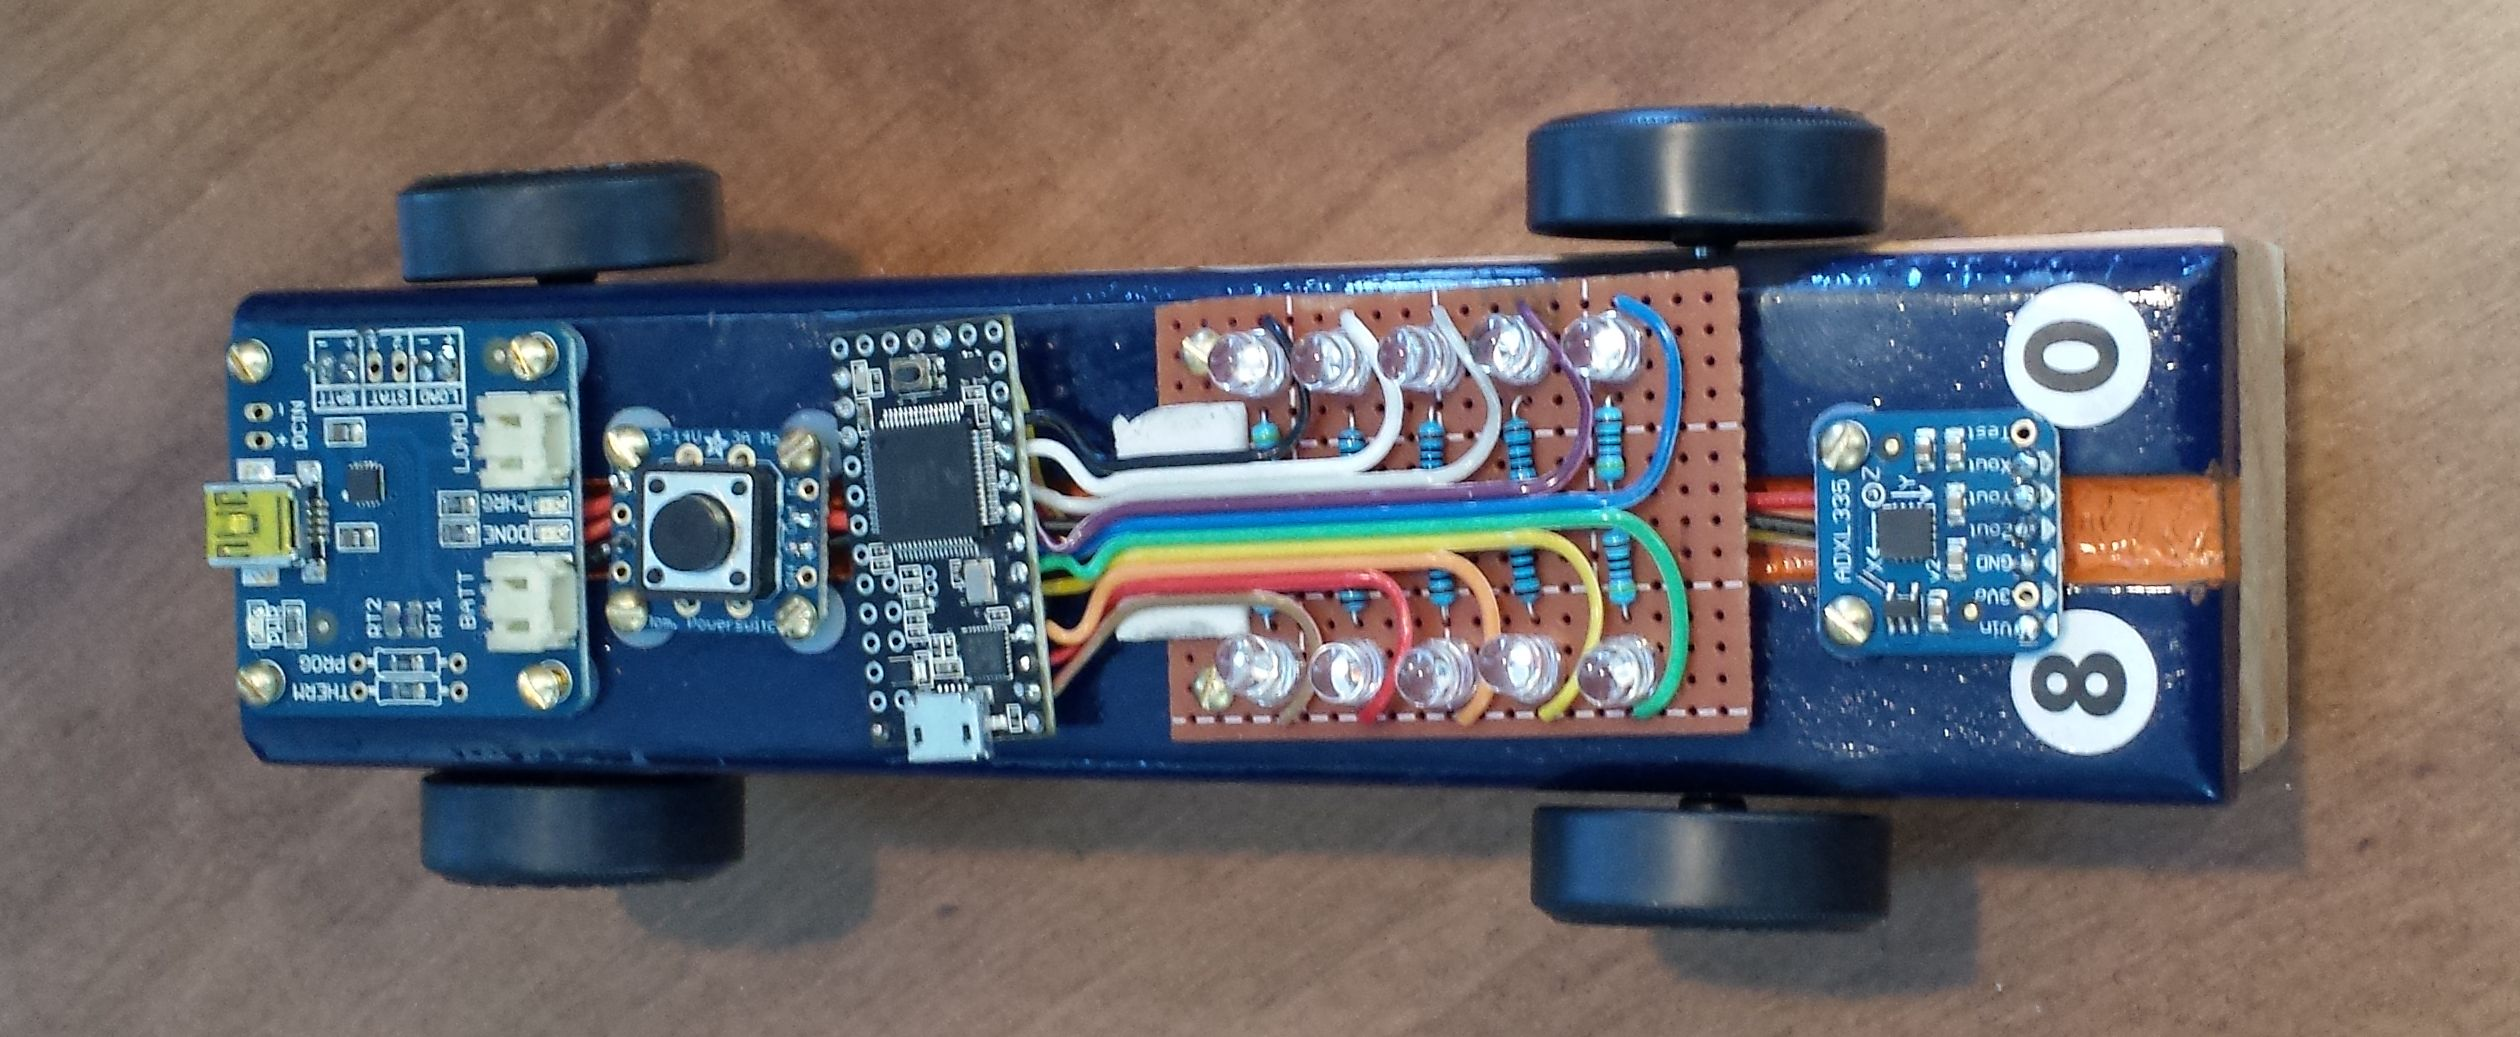 Arduino Powered Pinewood Derby Race Car Make Place The Circuit Board In Cavity And Slot Battery Pack Into Figure 2